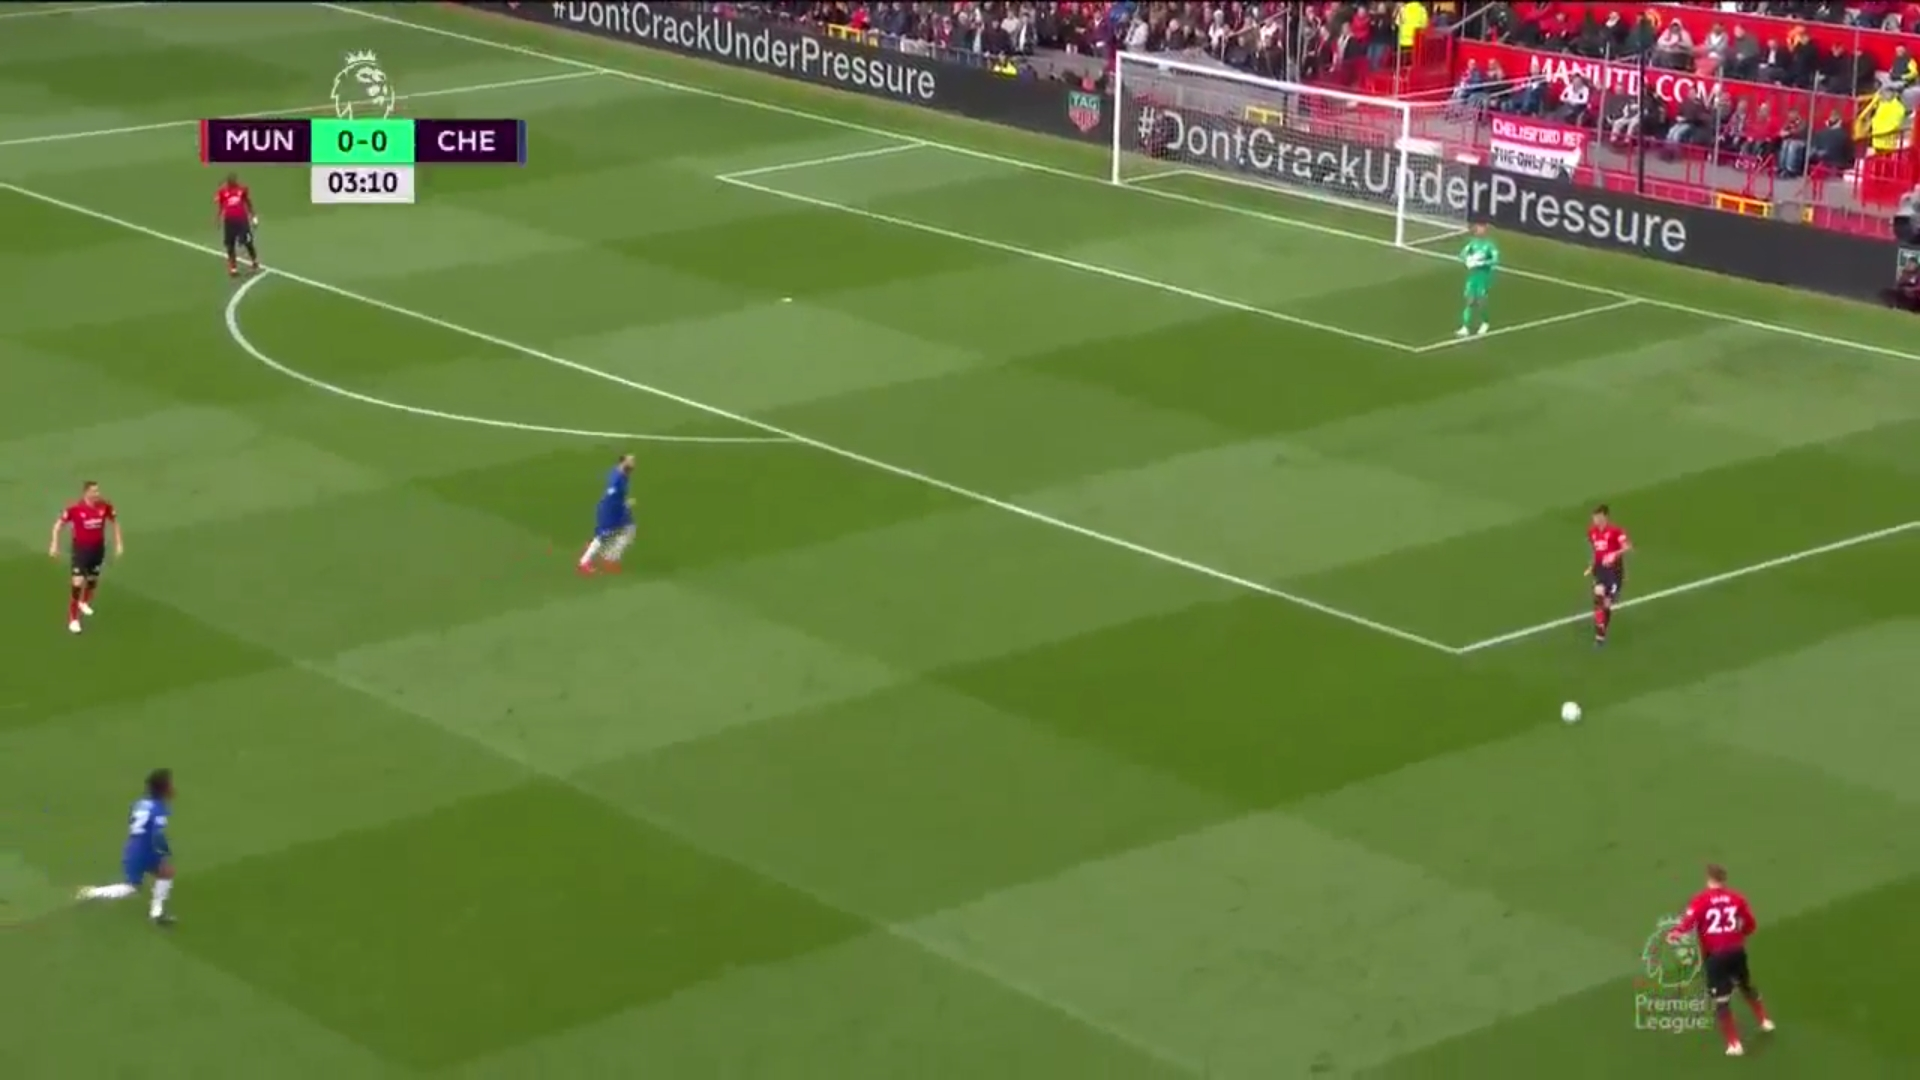 28-04-2019 - Manchester United 1-1 Chelsea